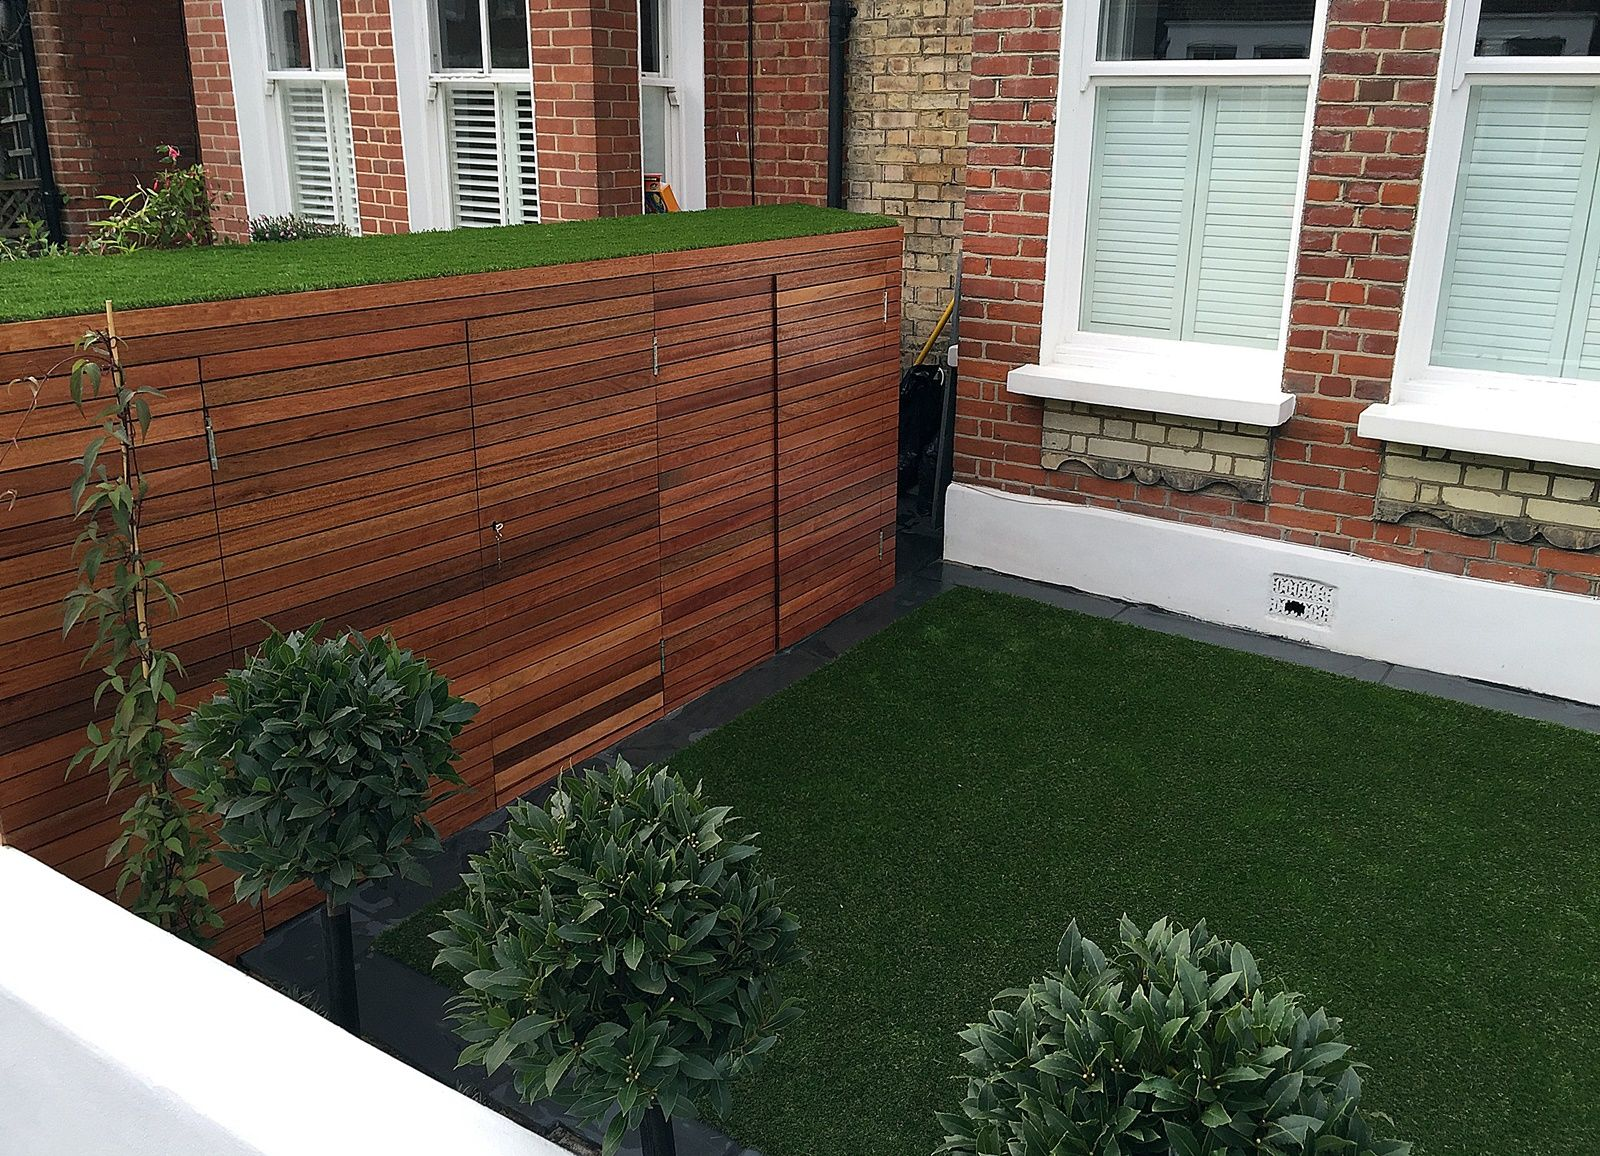 Fake Grass Chelsea Putney Architectural White Garden Wall Planting Lawn  Easi Wandsworth Contact Anewgarden For More Information